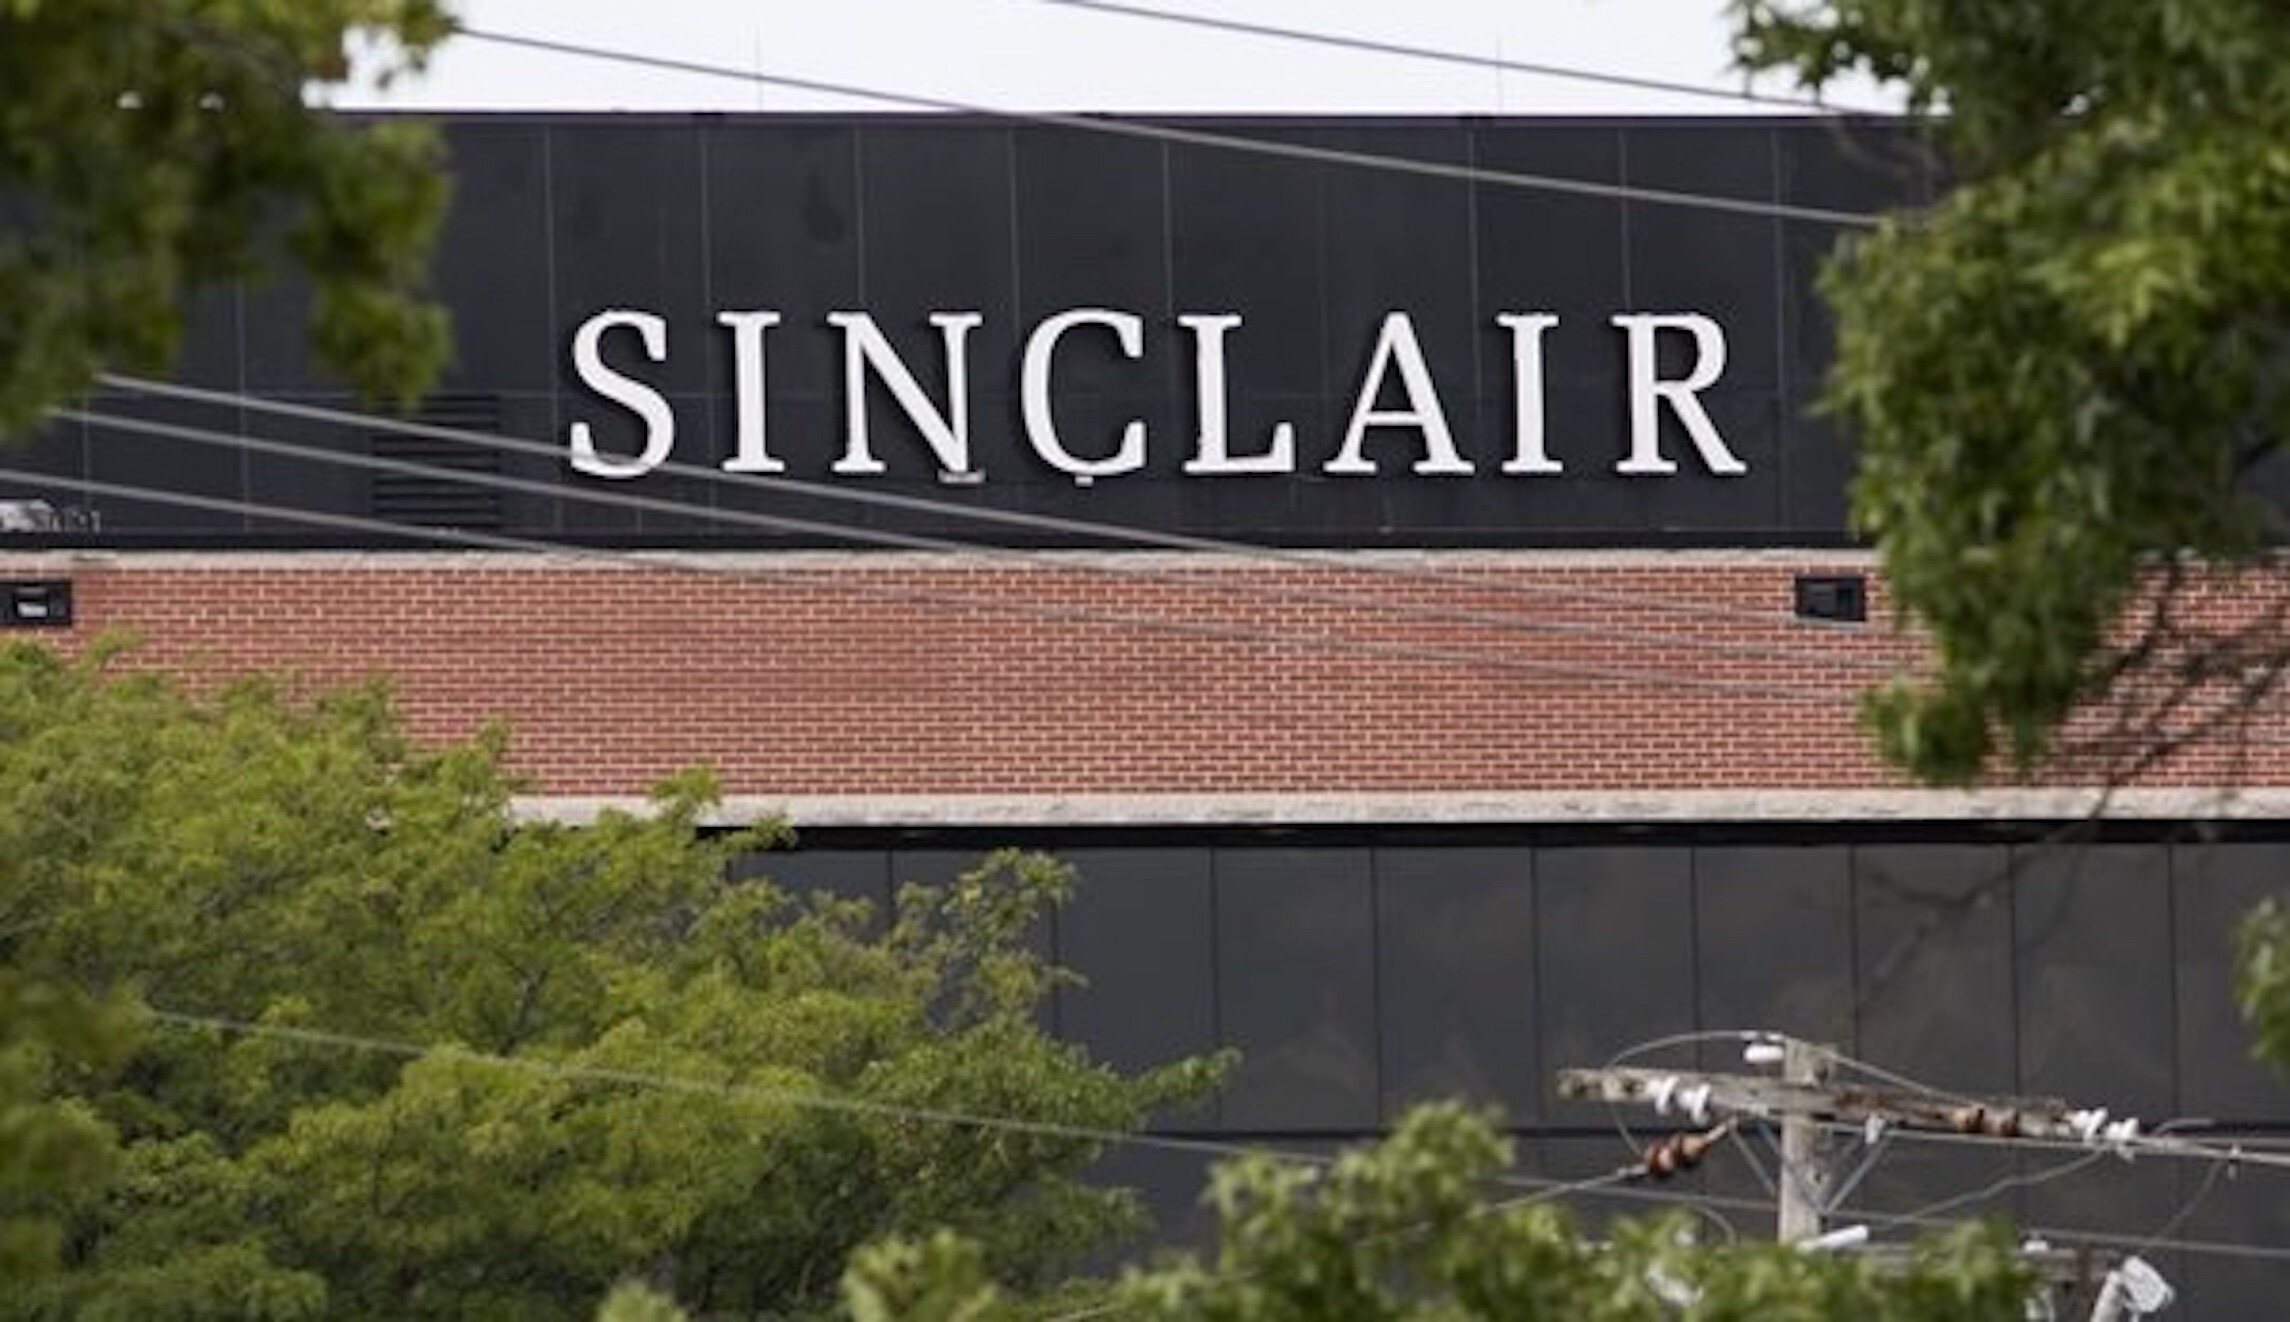 Sinclair chairman defends anti-fake news message: Every word from